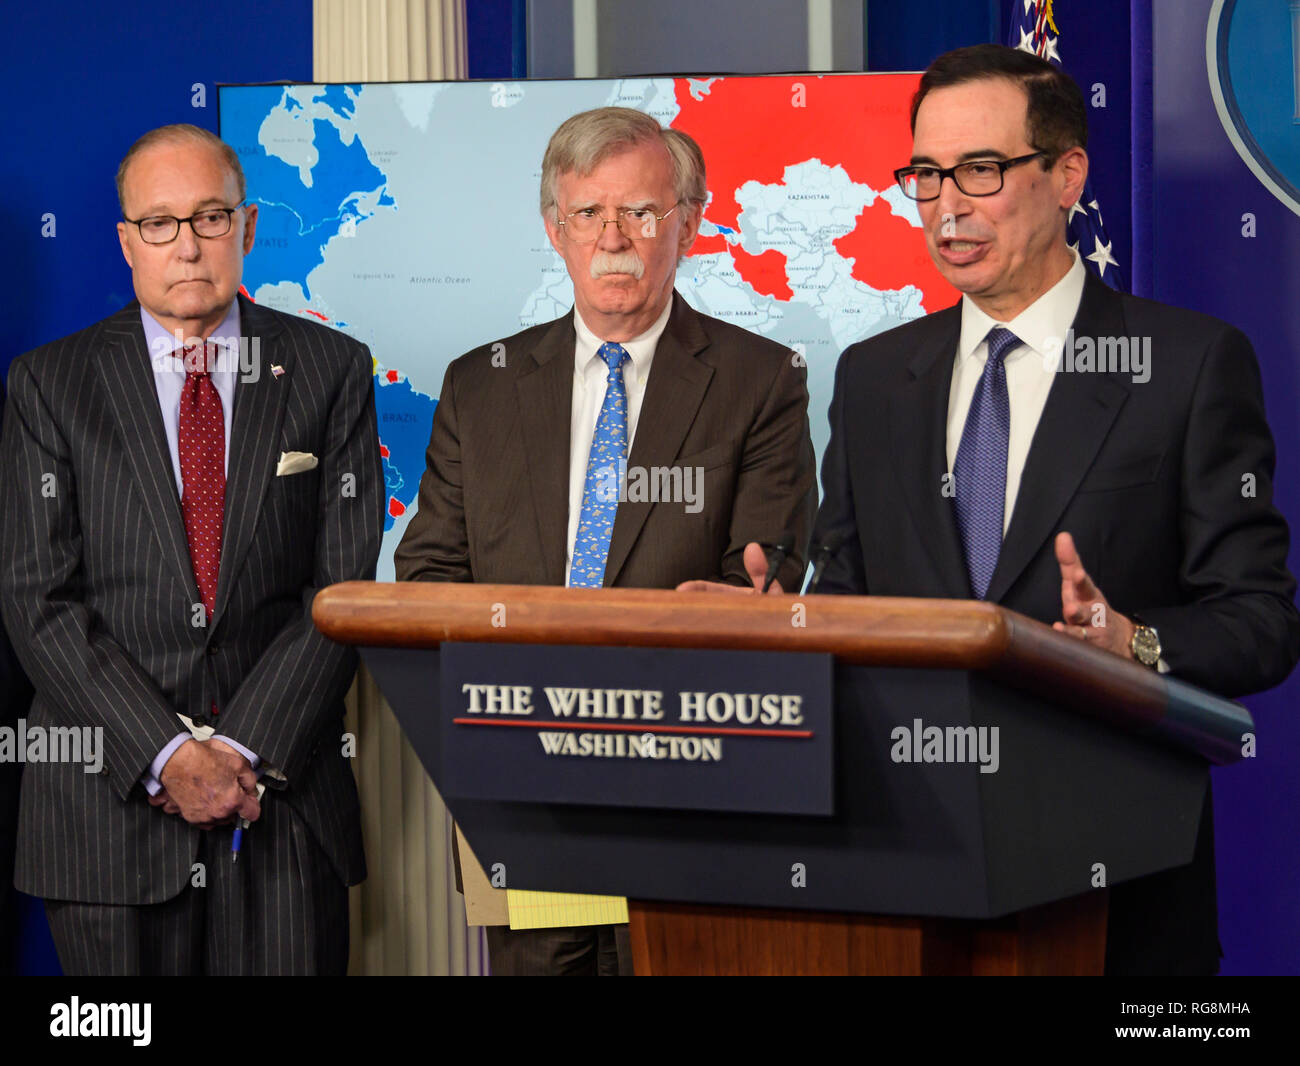 United States Secretary of the Treasury Steven T. Mnunchin, right, conducts a briefing with National Security Advisor John R. Bolton, center, in the Brady Press Briefing Room of the White House in Washington, DC on Monday, January 28, 2019. Bolton and Mnunchin announced that the administration had imposed sanctions on Petroleos De Venezuela S.A., the state-owned oil company of Venezuela, a move aimed to increase the pressure on President Nicolas Maduro to cede power to Juan Guaido. Looking on from left is Director of the National Economic Council Larry Kudlow. Credit: Ron Sachs/CNP   usage - Stock Image